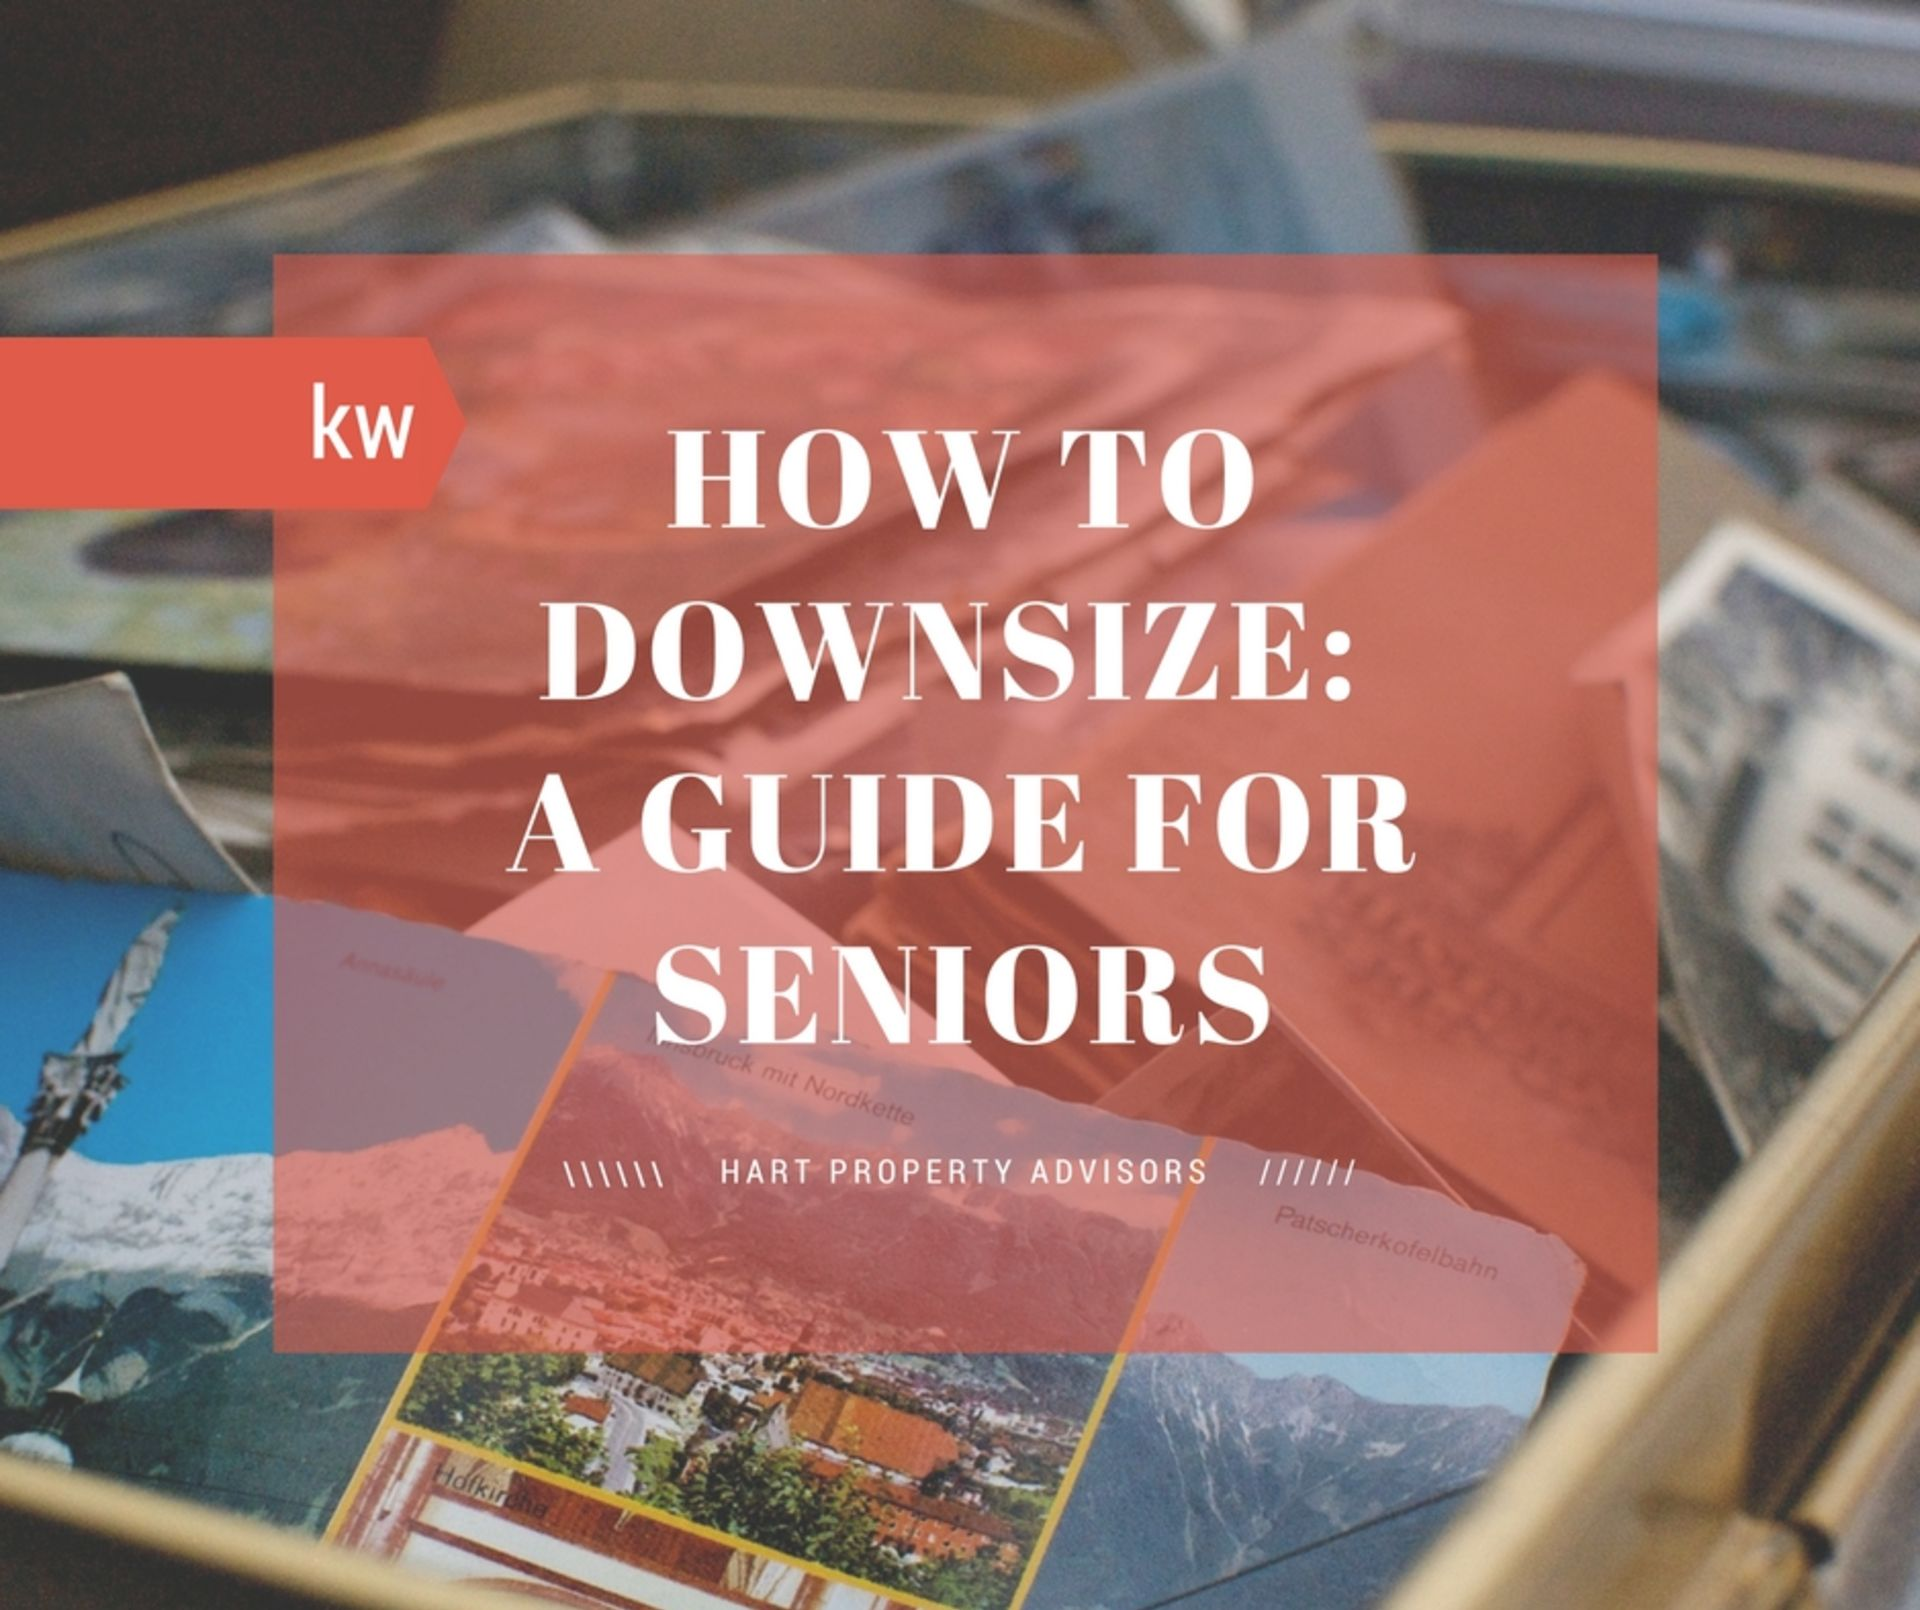 How to Downsize: A Guide for Seniors